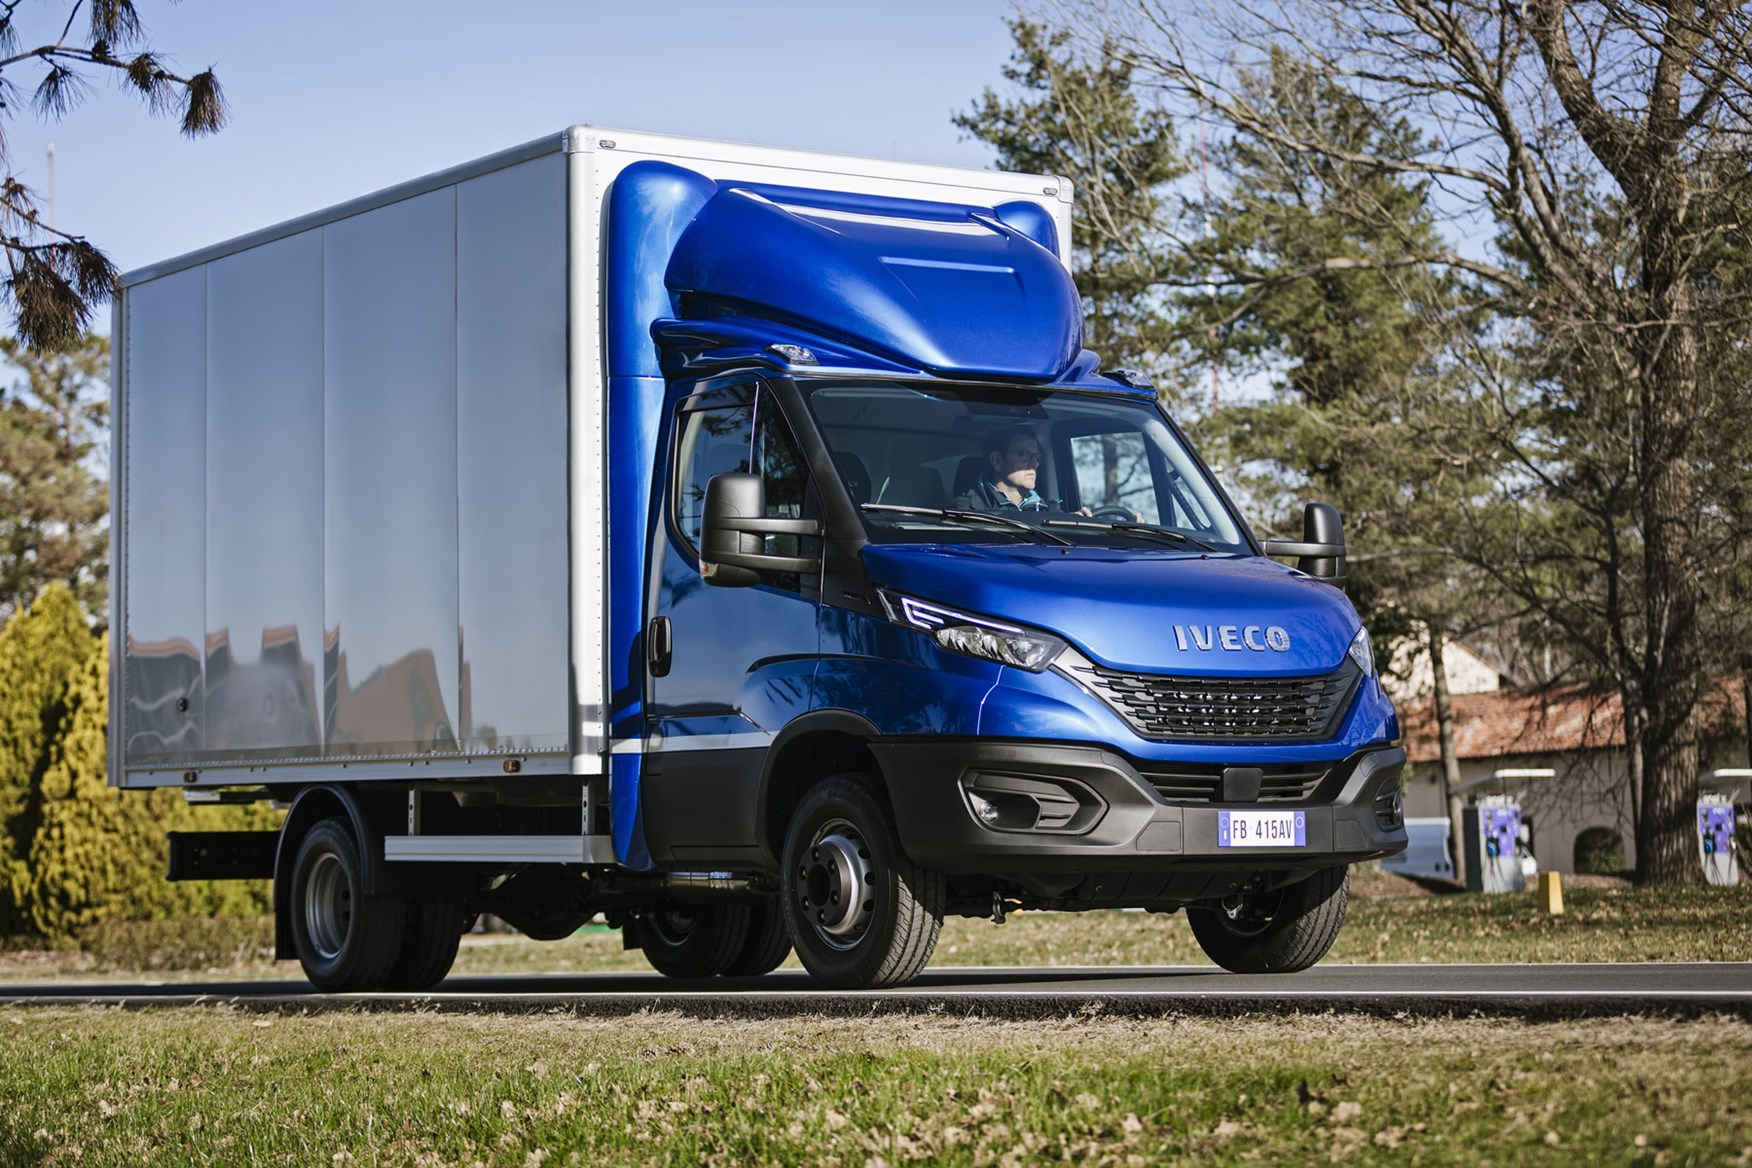 Iveco Daily 2019 review - box van, front side view, blue and white